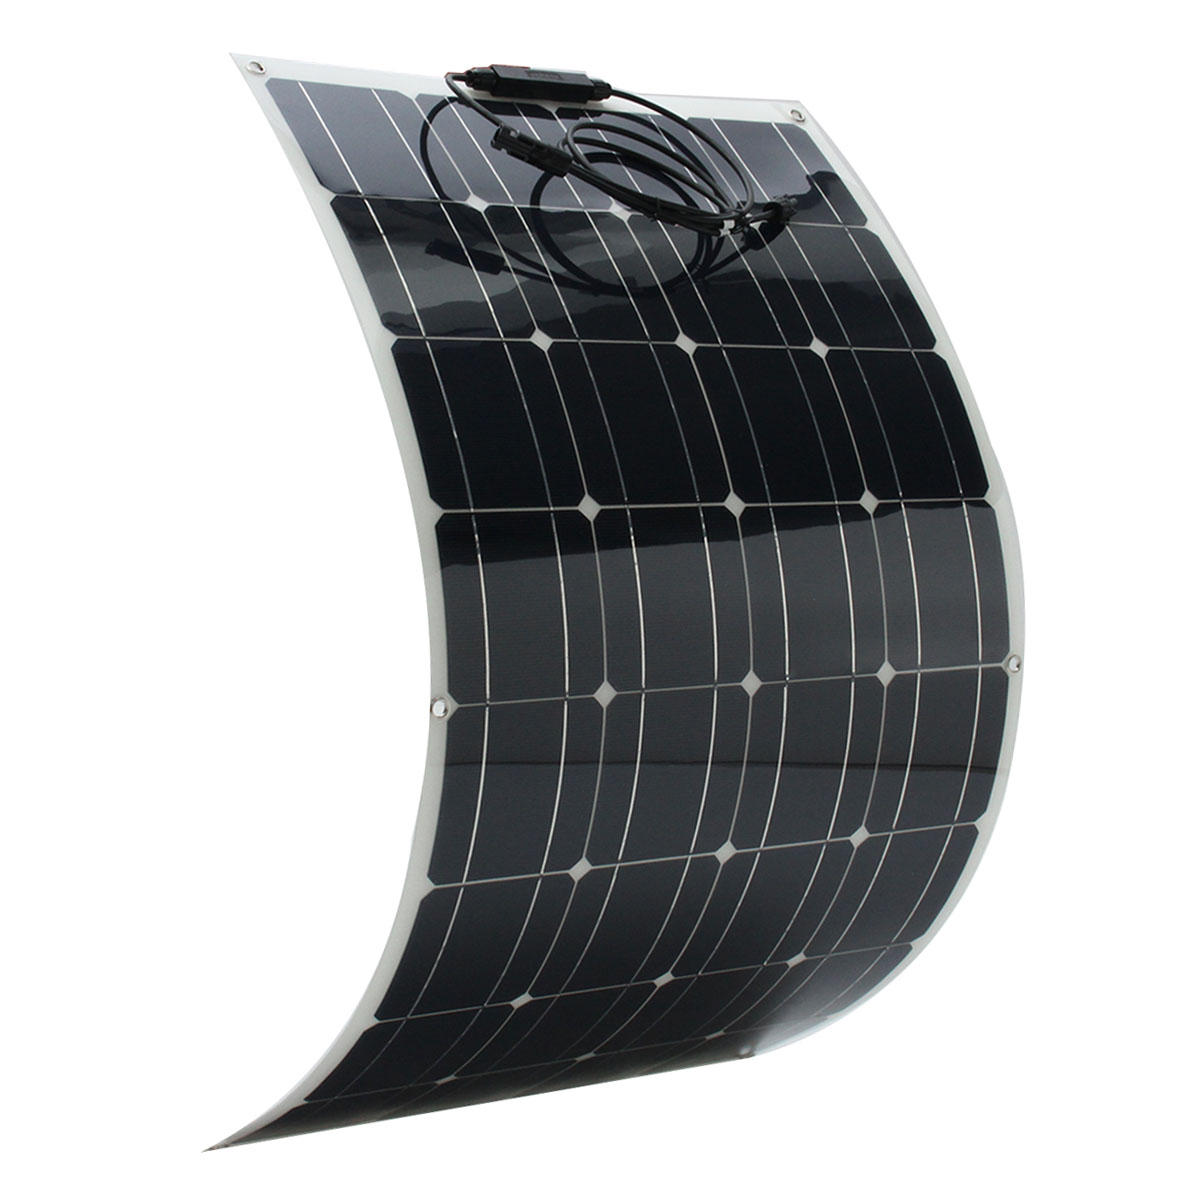 Elfeland SP-37 18V 100W 1050*540mm Semi-Flexible Monocrystalline Solar Panel